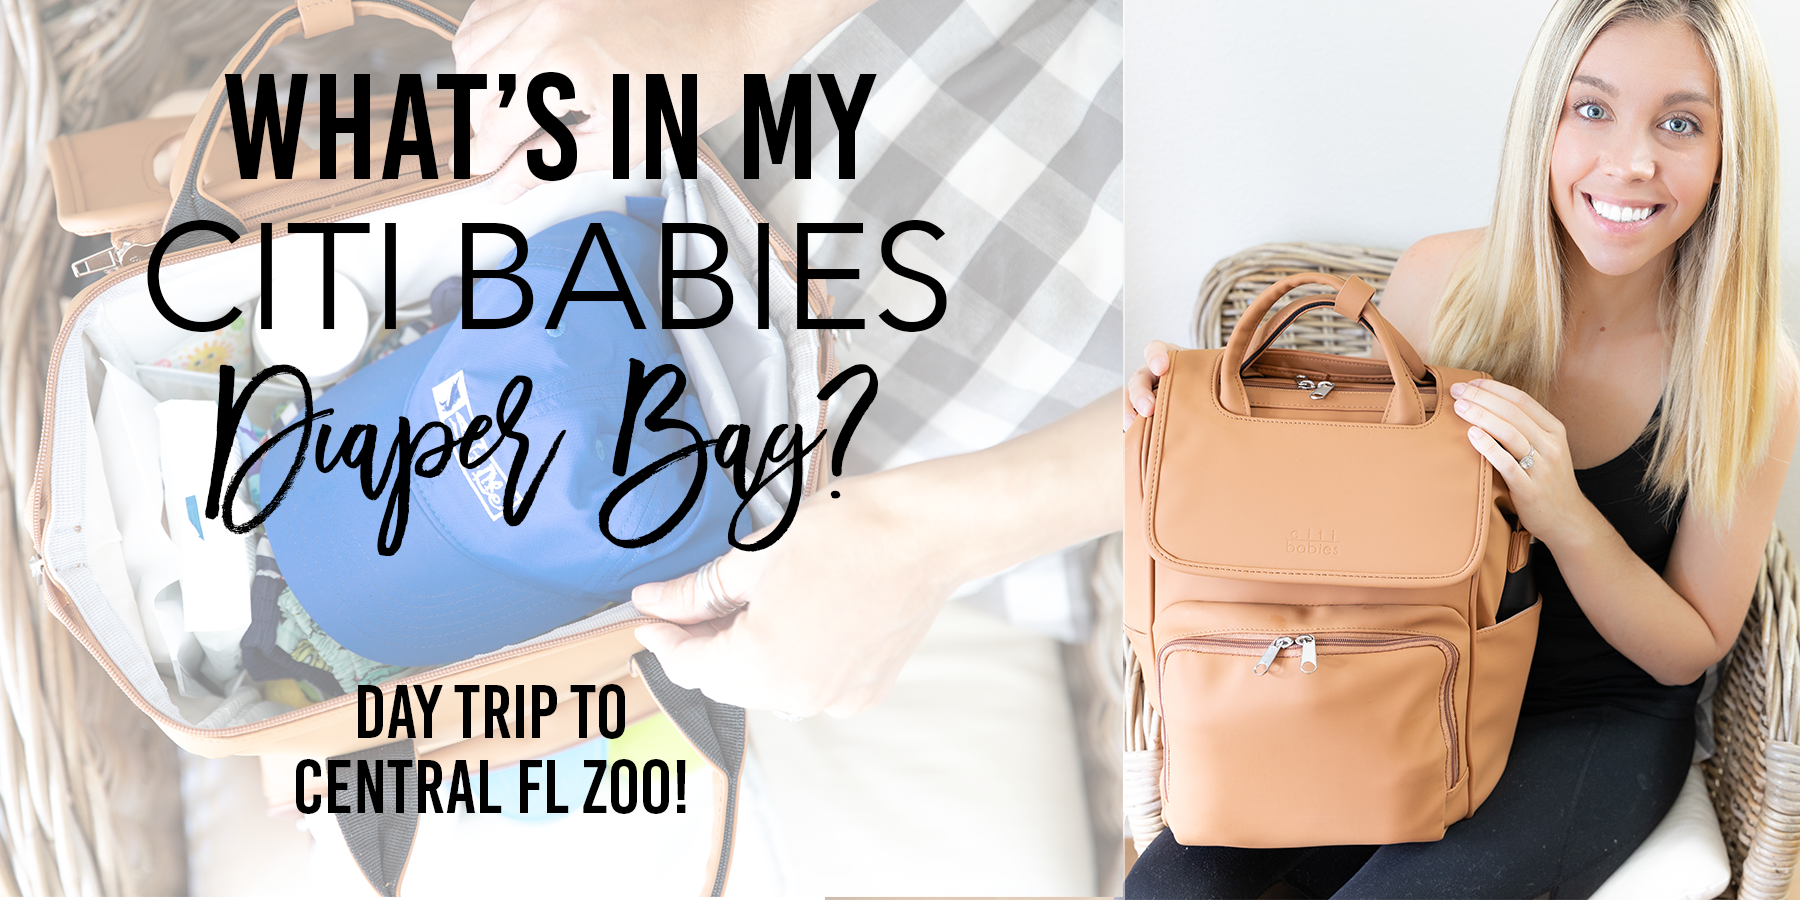 What's in My Citi Babies Diaper Bag? | Day Trip to Central FL Zoo!